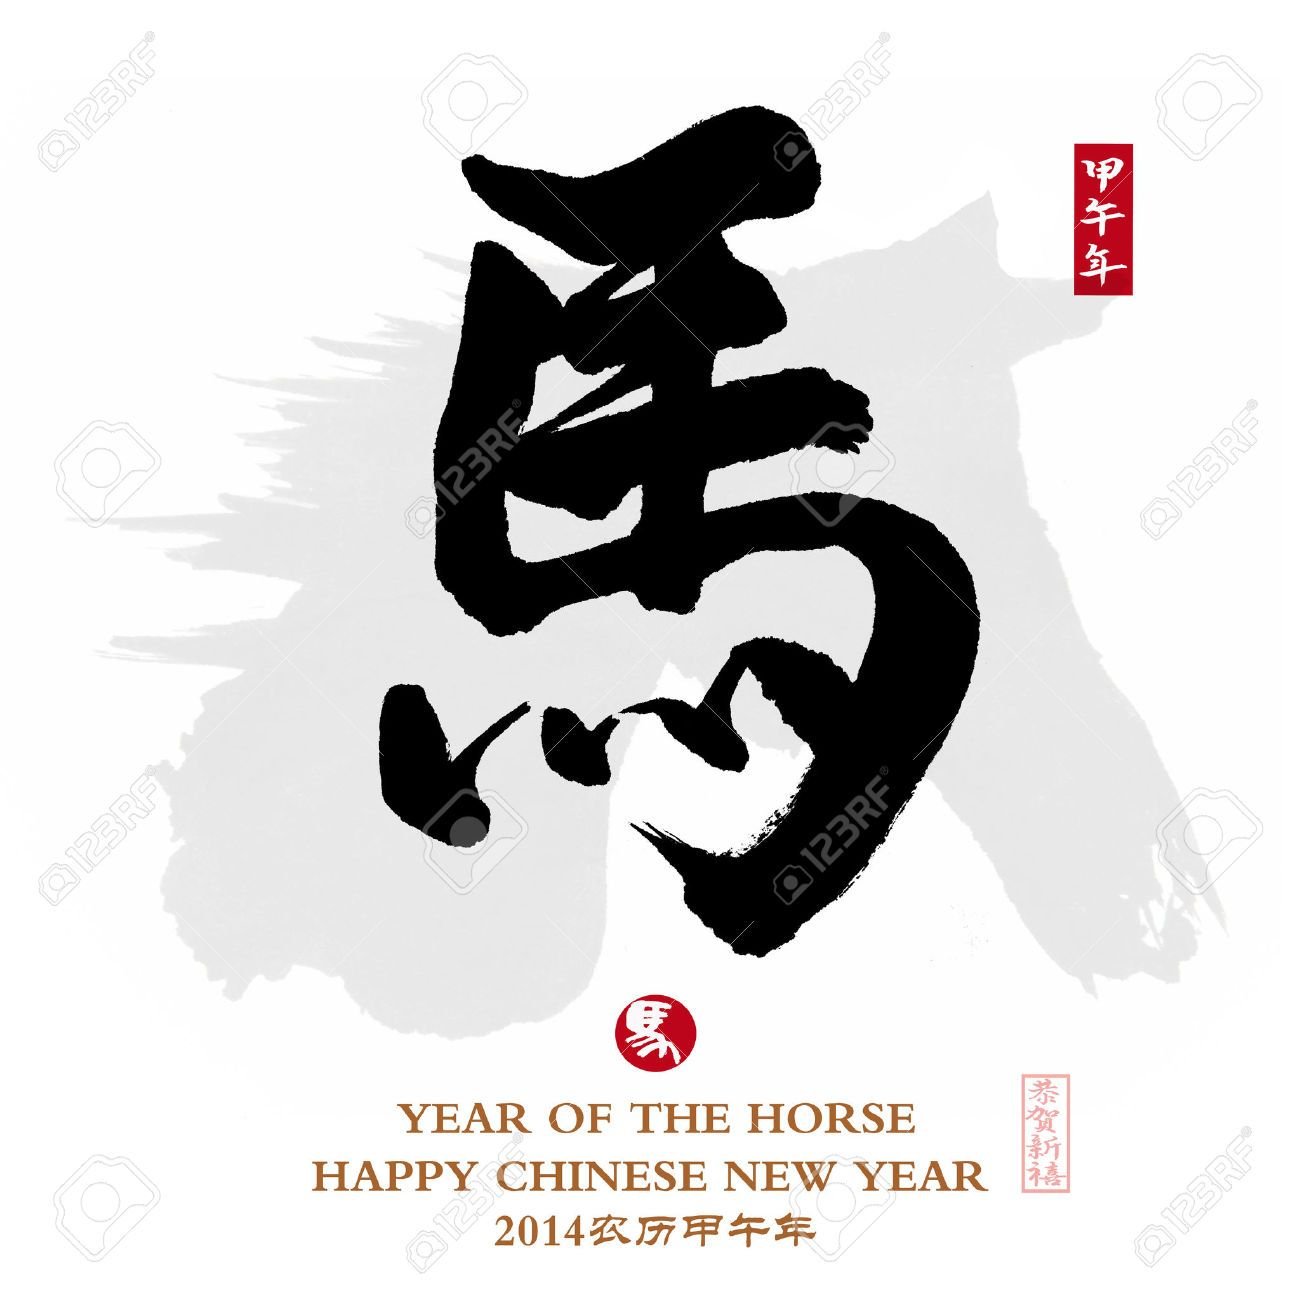 2014 is year of the horsechinese calligraphy word for horse 2014 is year of the horsechinese calligraphy word for horse biocorpaavc